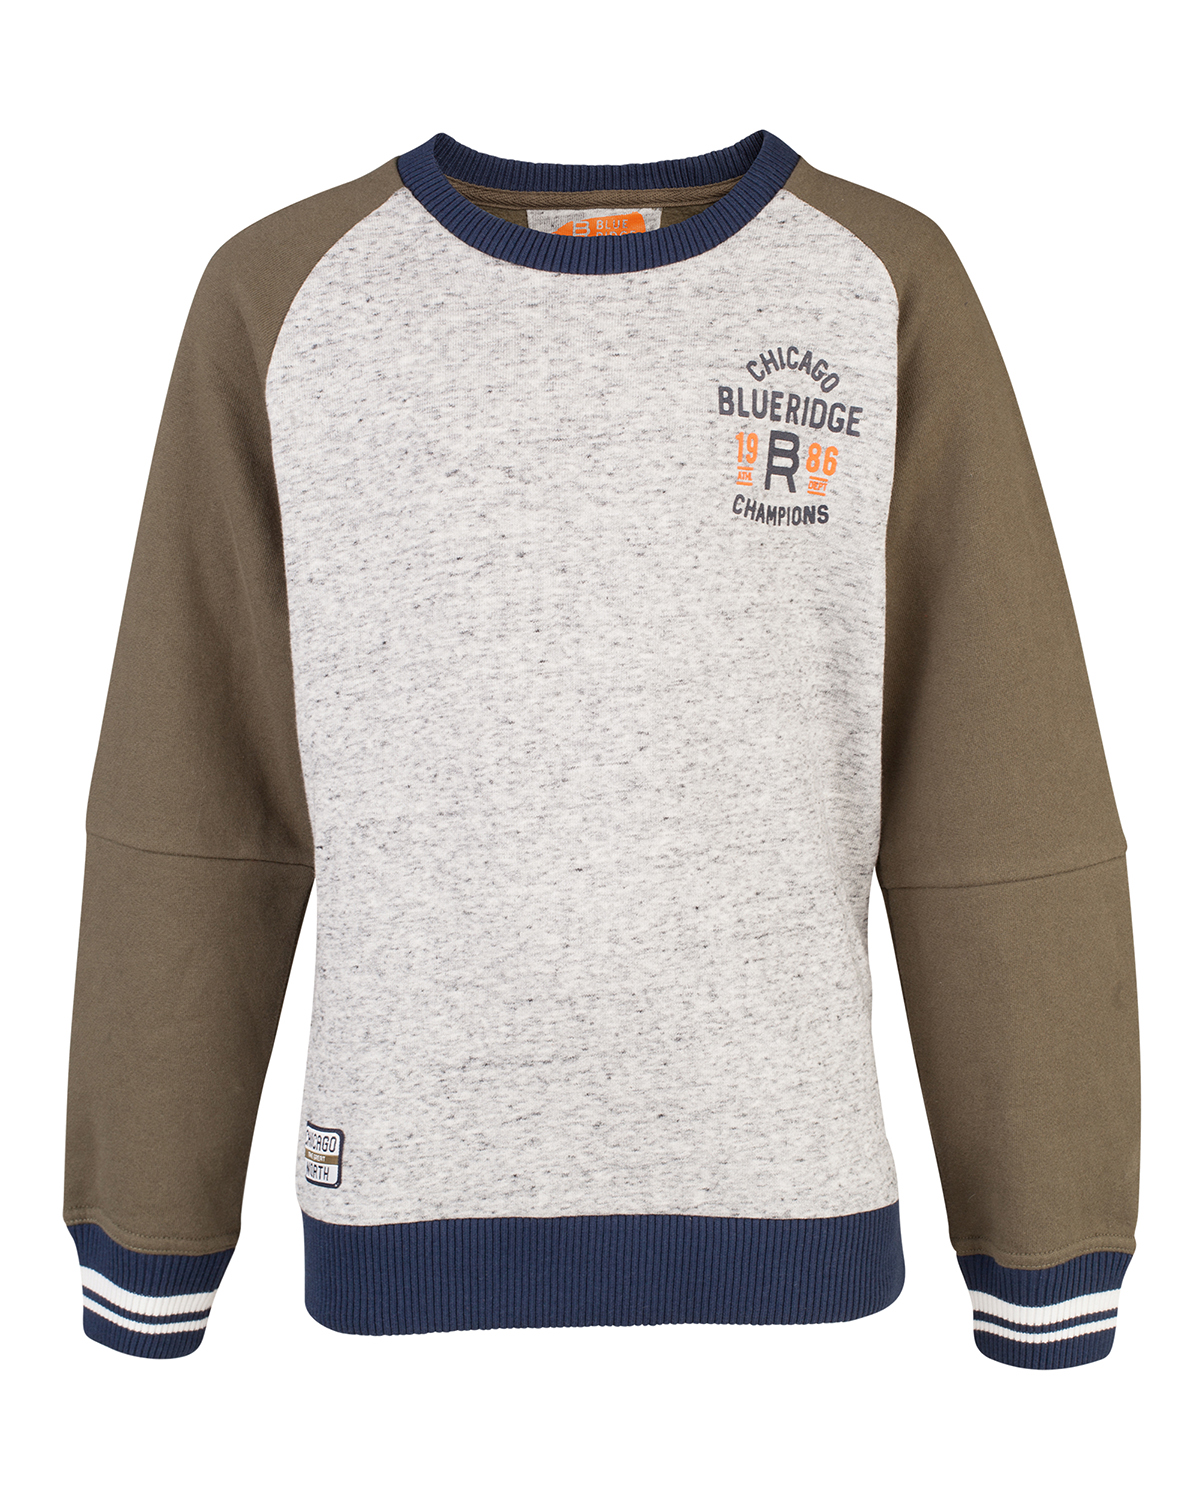 Jongens blue ridge raglan sweater